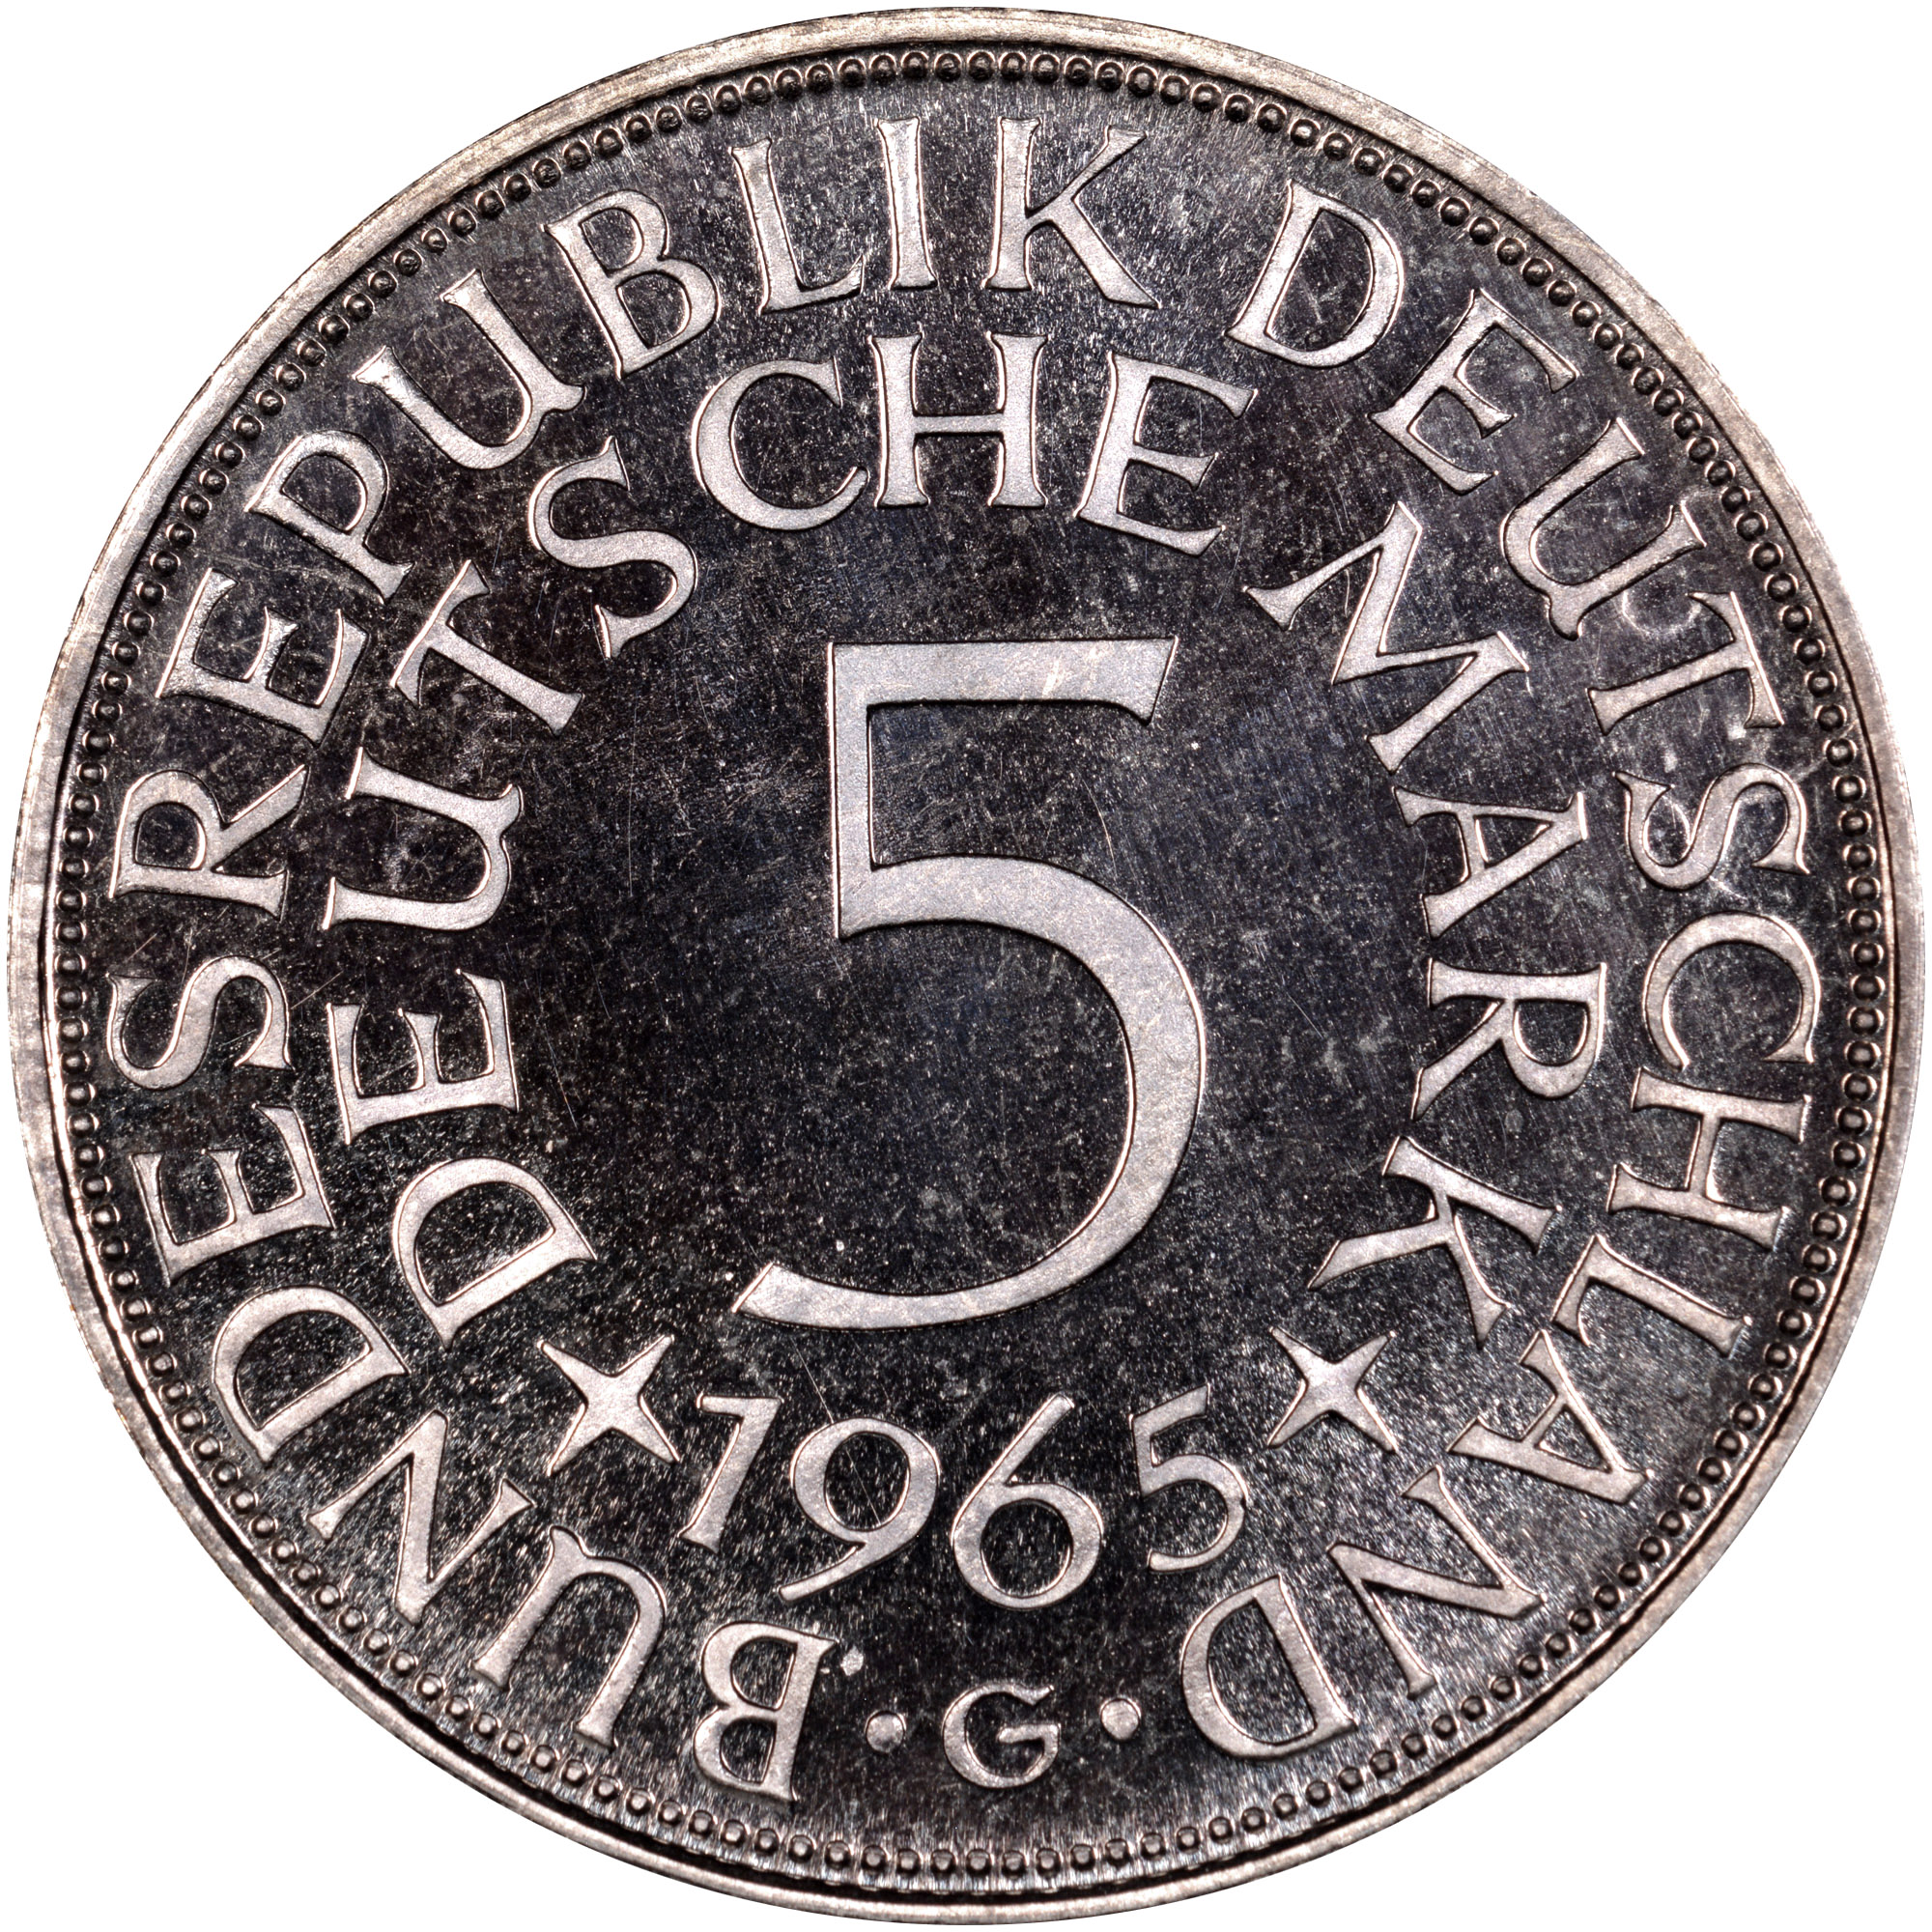 Germany federal republic 5 mark km 1121 prices values ngc germany federal republic 5 mark obverse buycottarizona